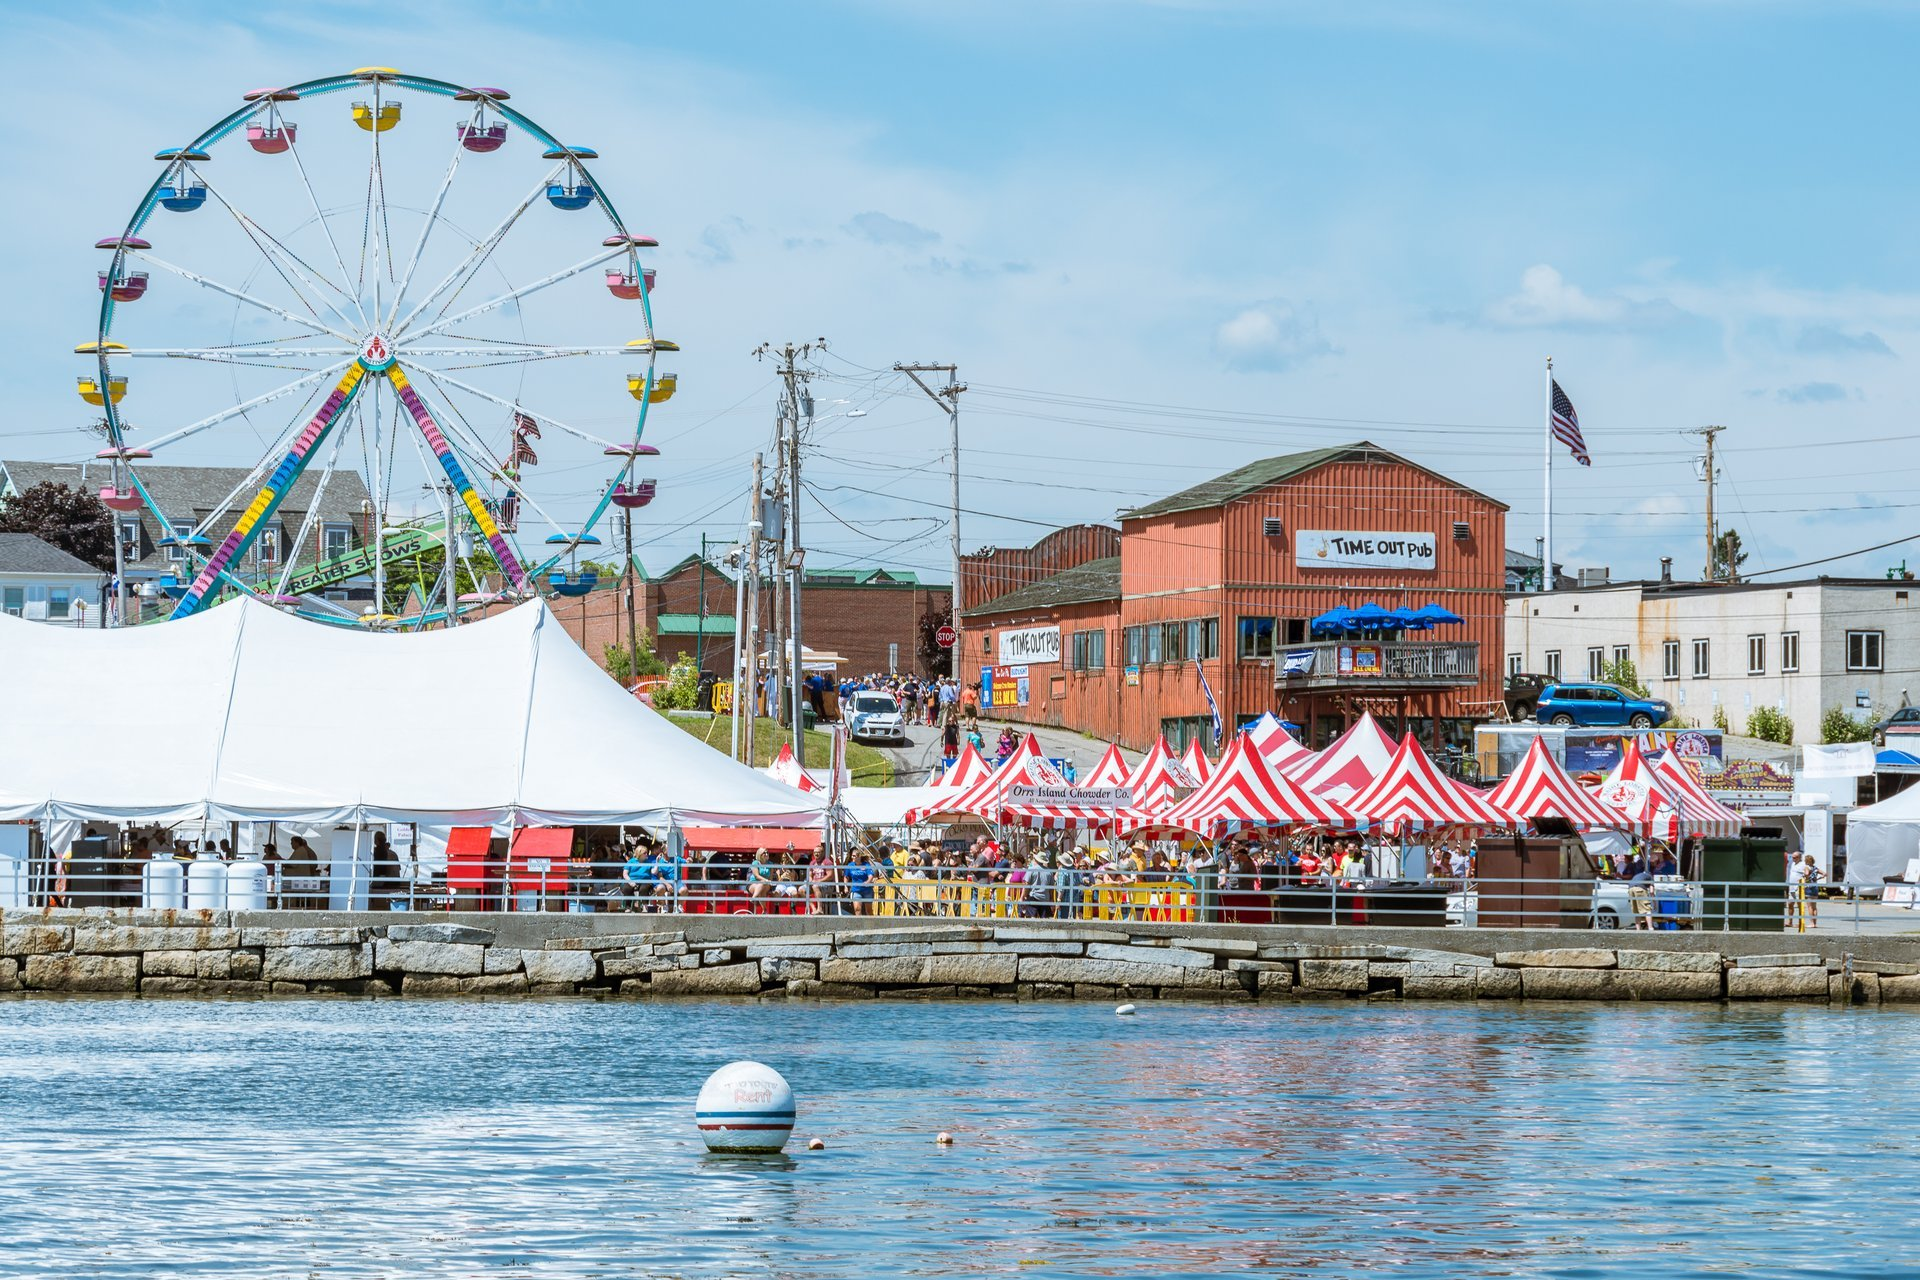 Maine Lobster Festival in Maine 2020 - Best Time